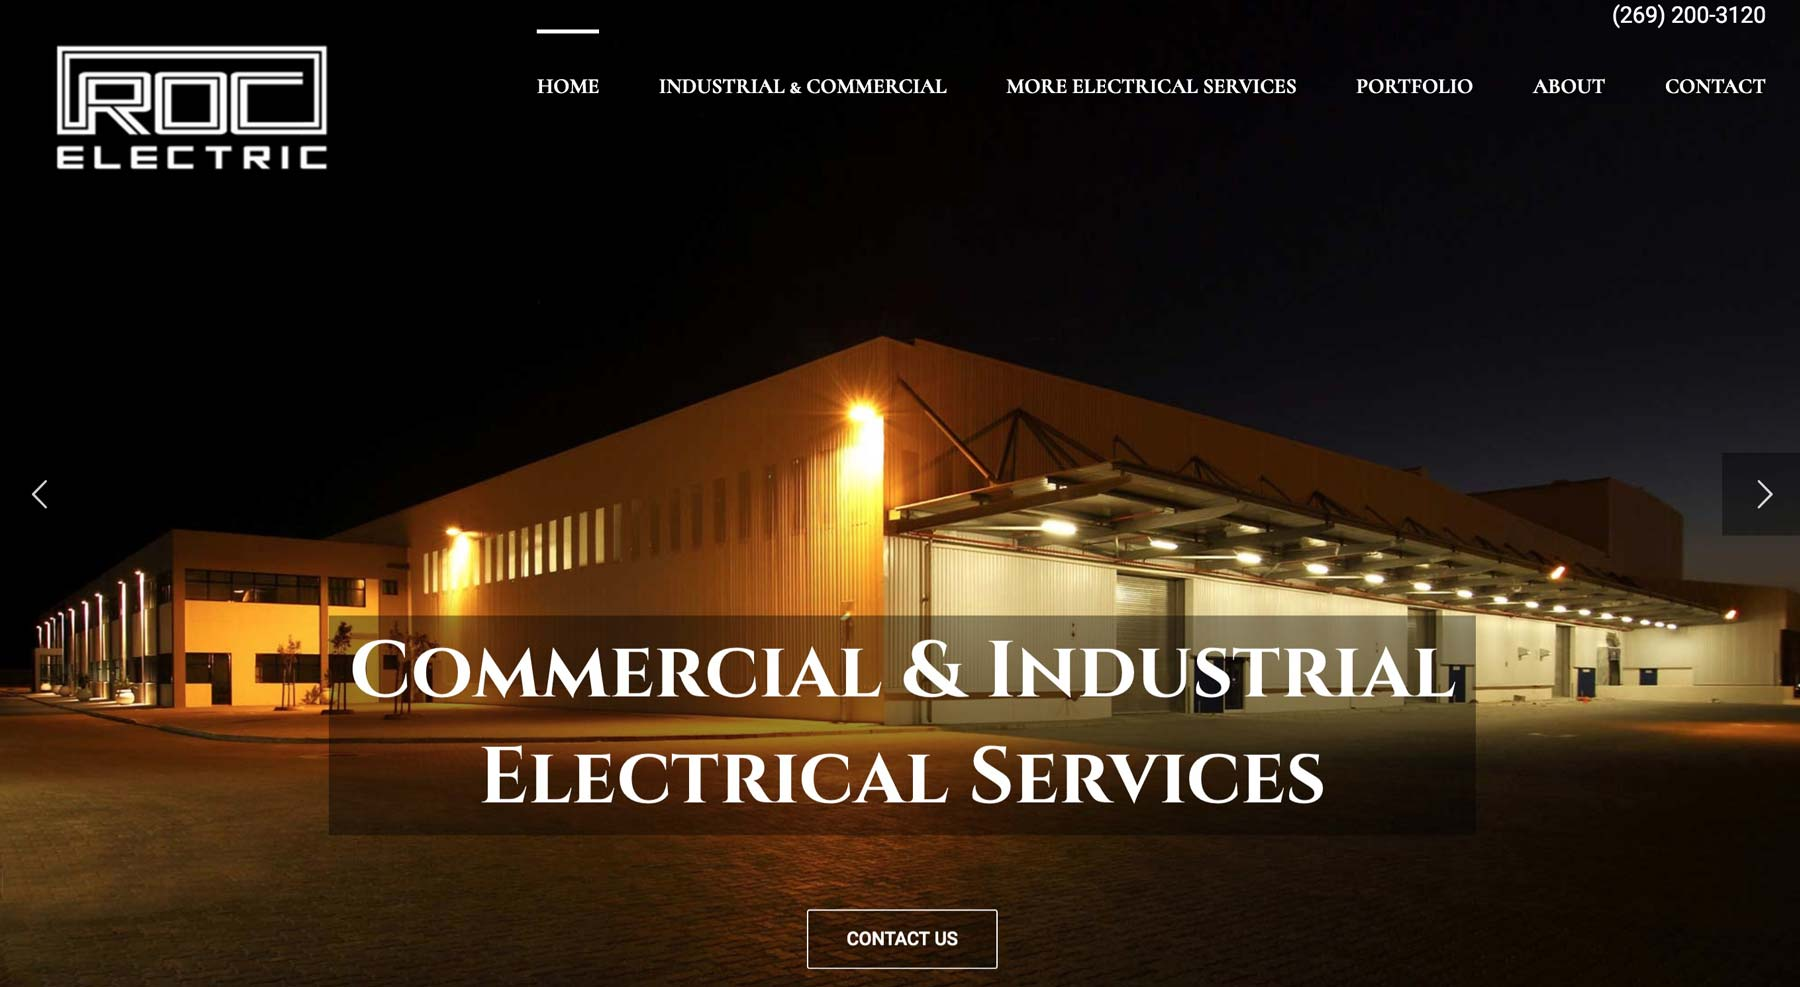 web design for electric company